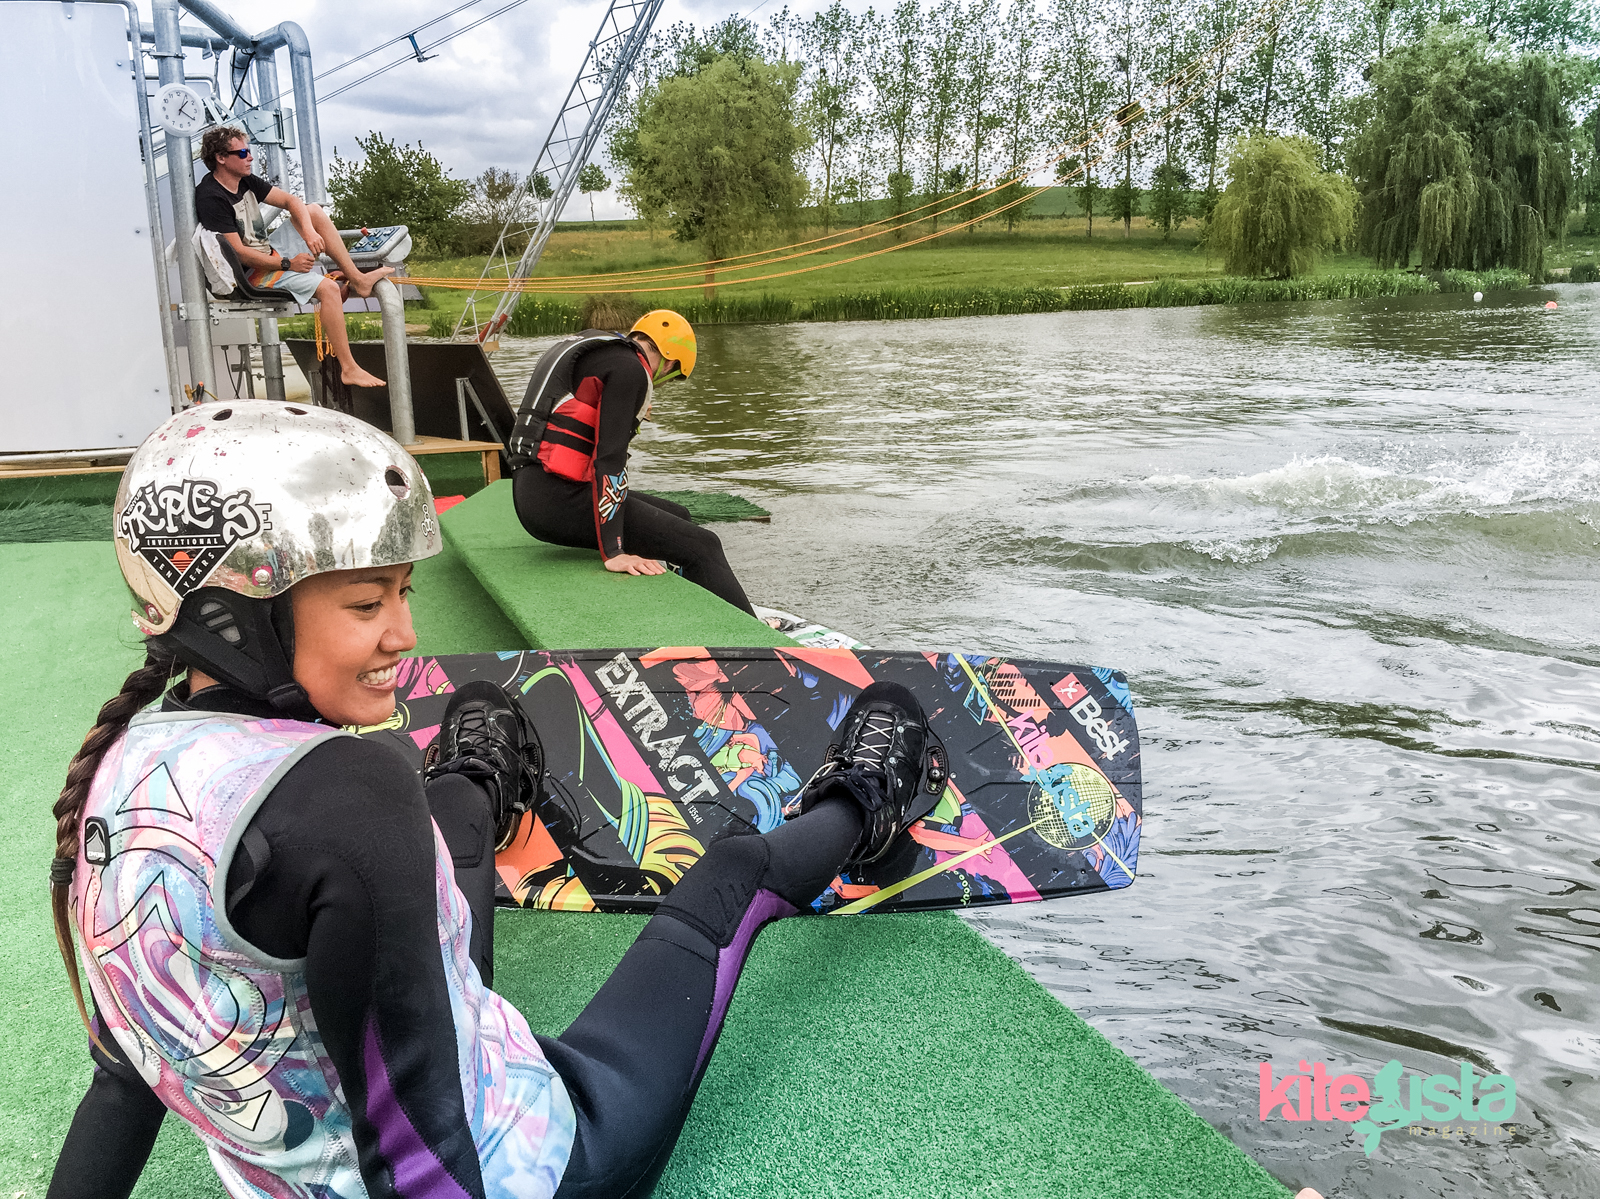 How to Start at the Cable Park without Crashing